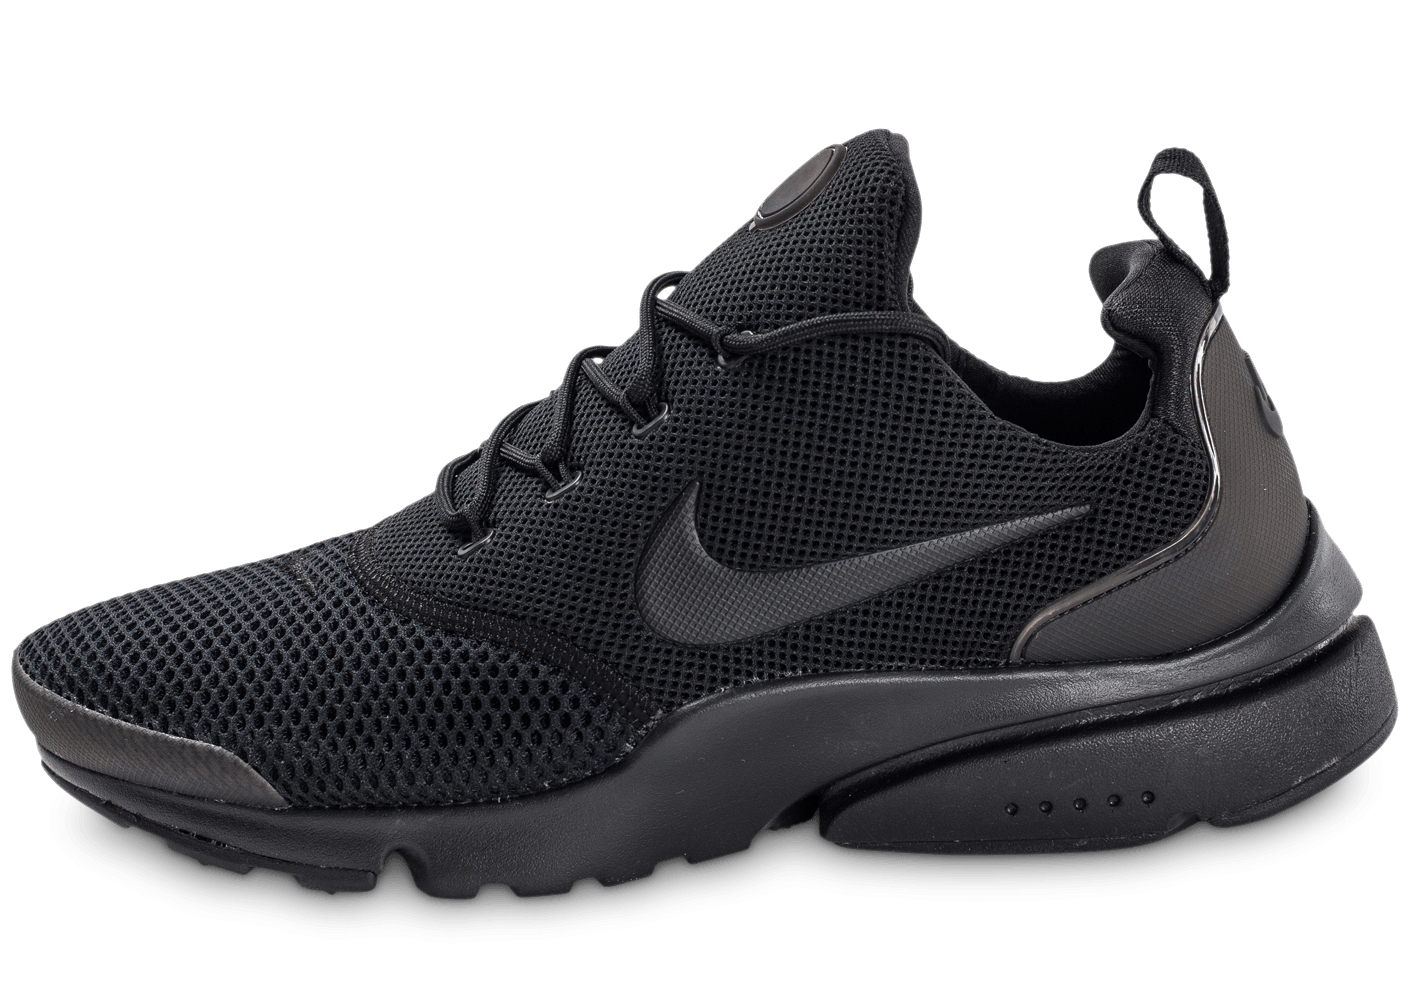 info for 878f6 0f9b5 Nike Presto Fly triple noir - Chaussures Baskets homme - Chausport